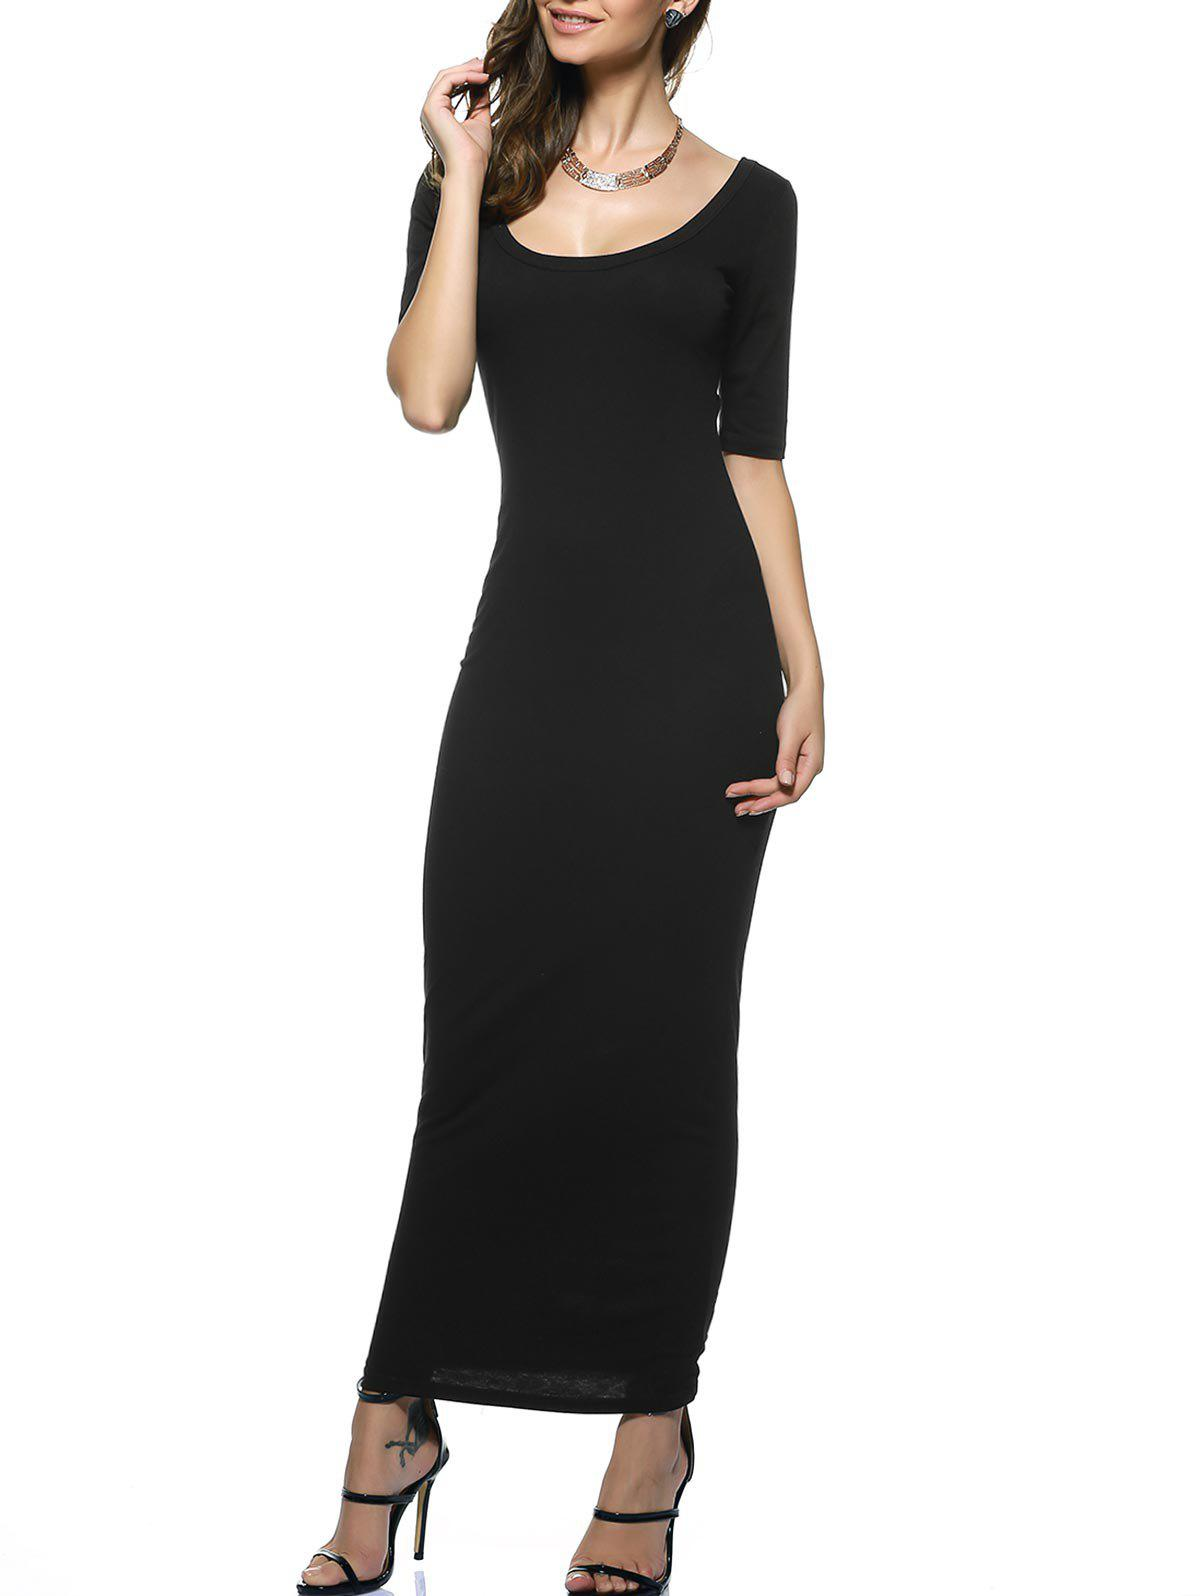 U Neck Long Backless Fitted Evening Dress